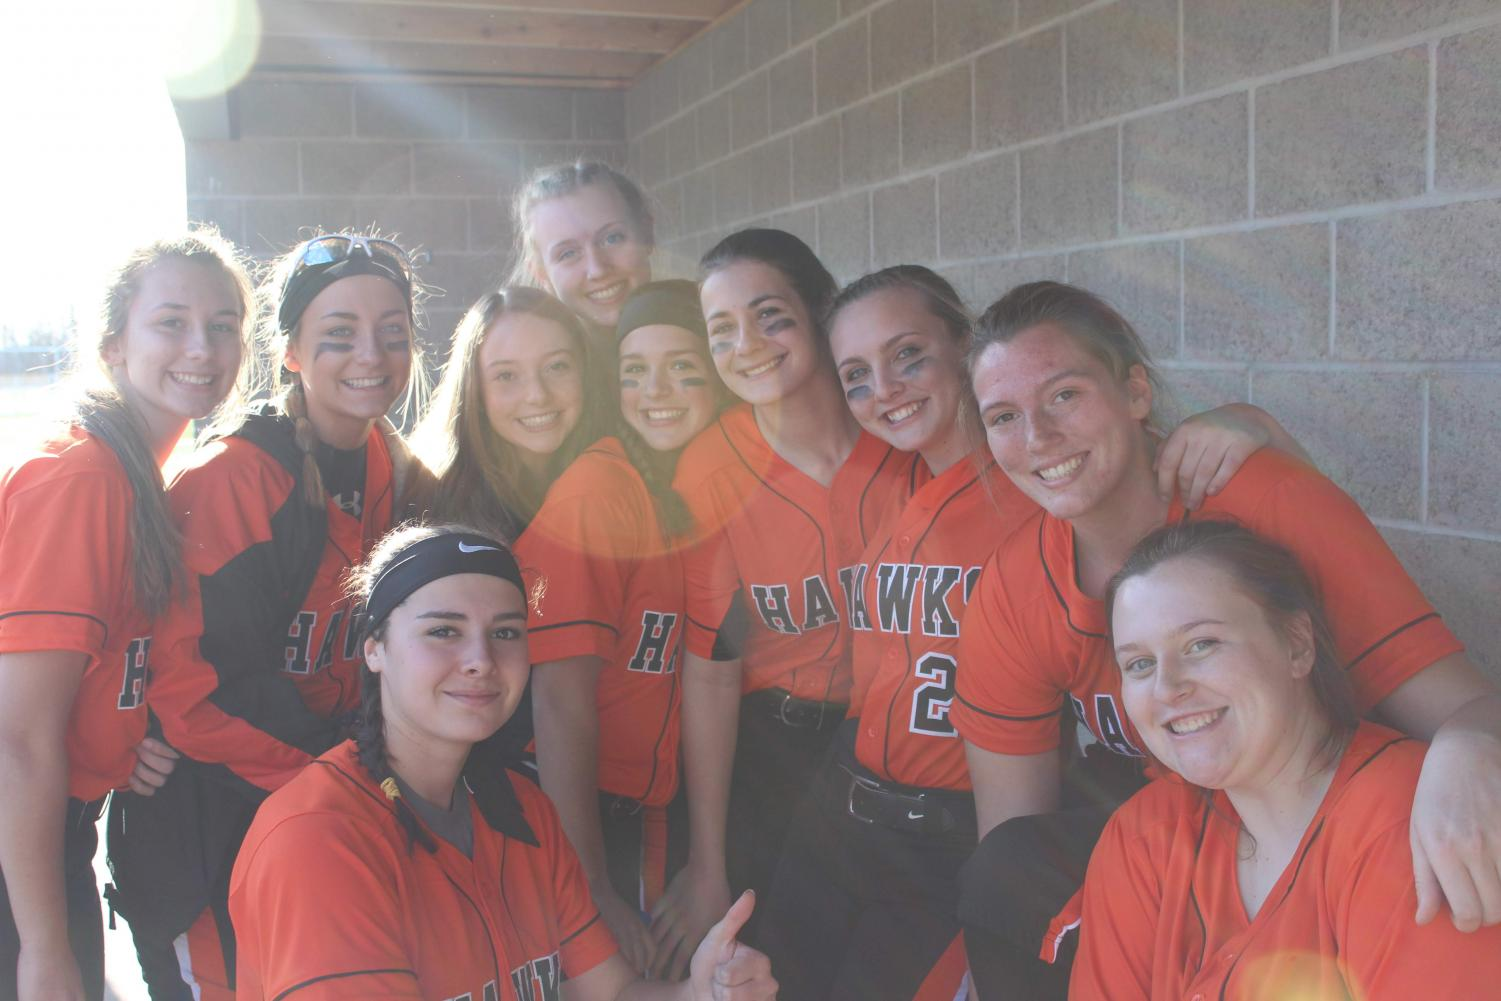 The softball team is all smiles at their game against Peters on March 27.